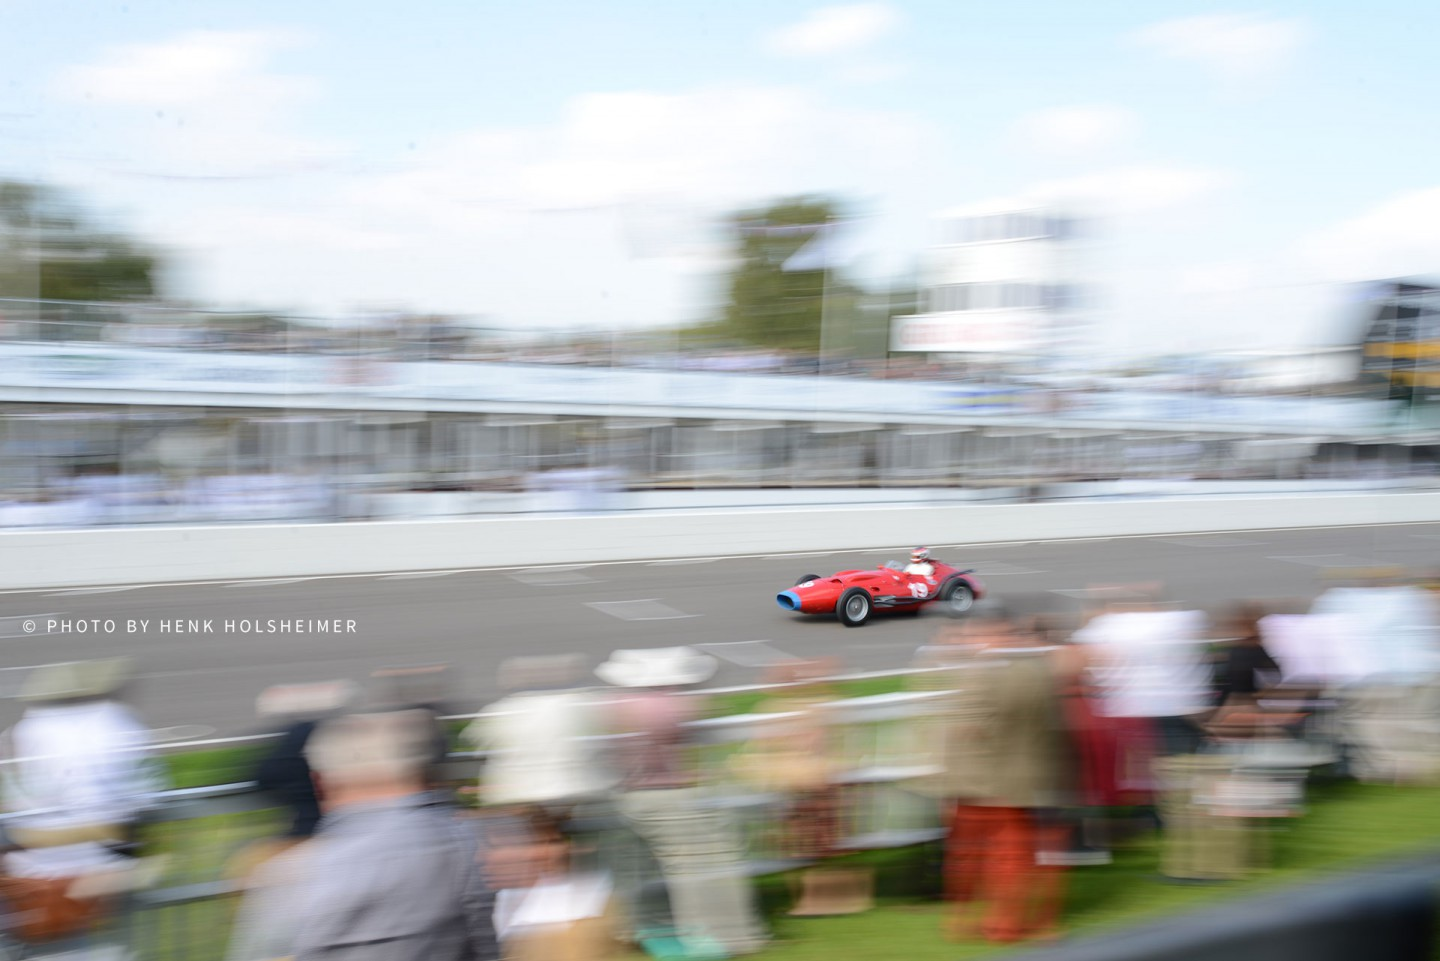 A Maserati 250F seen from the Startline Grandstand at the Goodwood Revival 2014